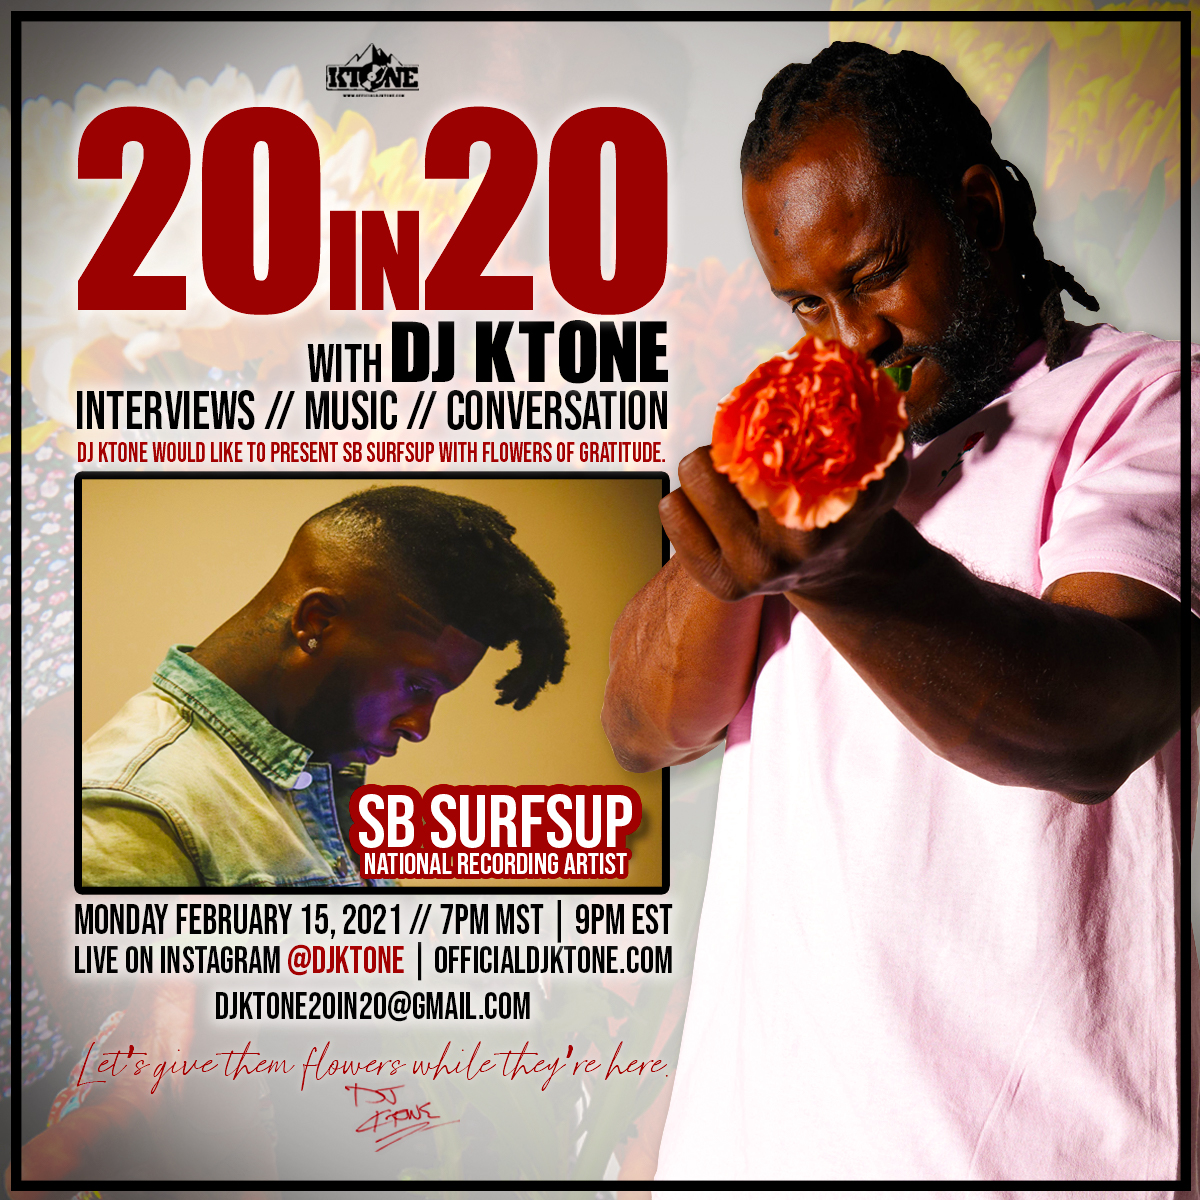 20 in 20 with SB Surfsup